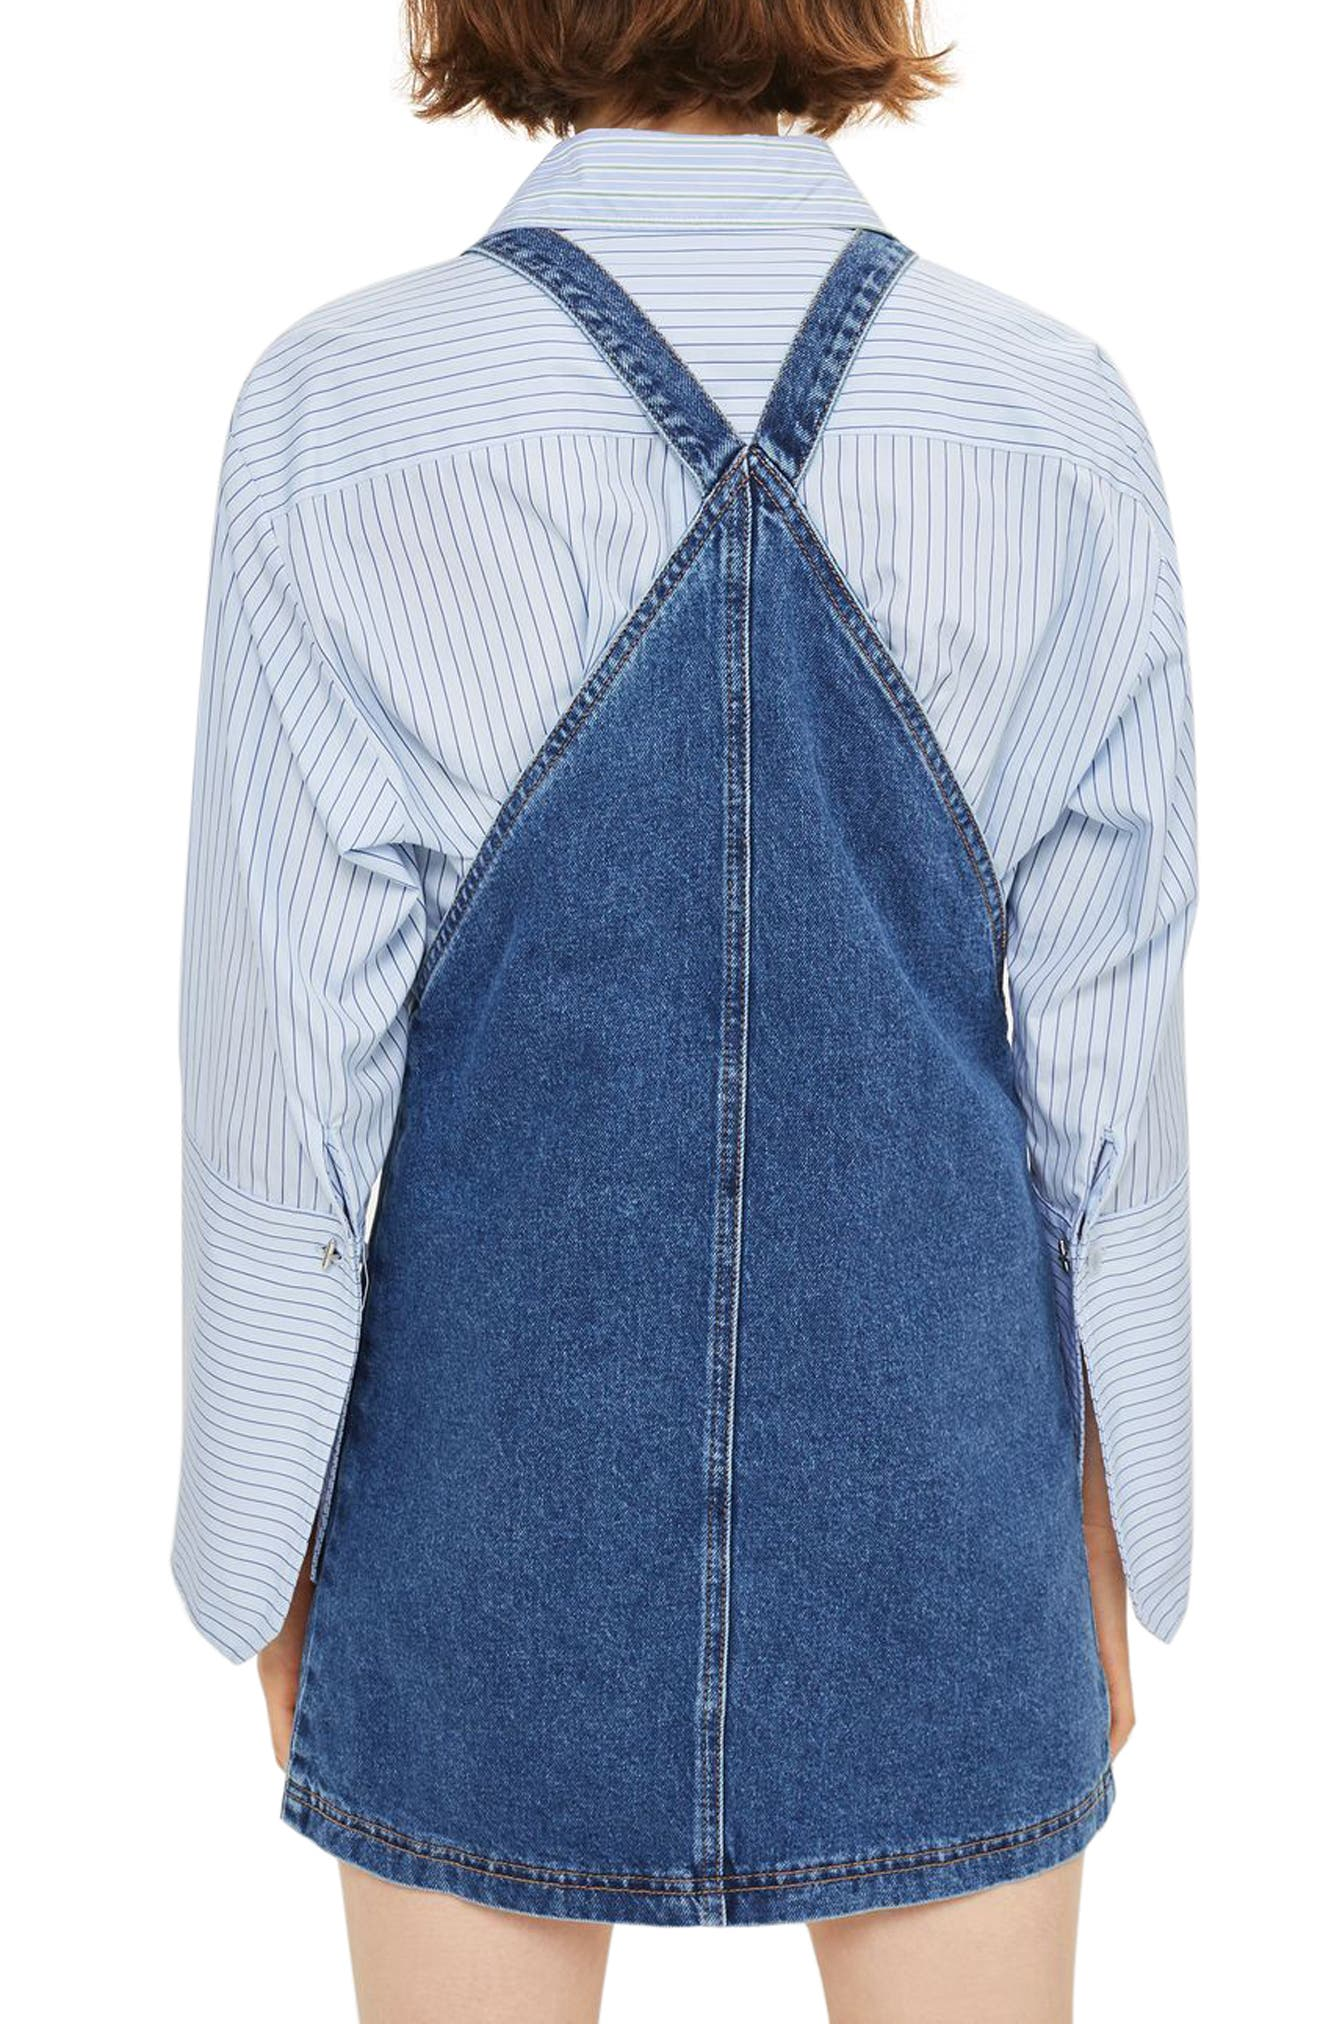 Denim Pinafore Dress,                             Alternate thumbnail 4, color,